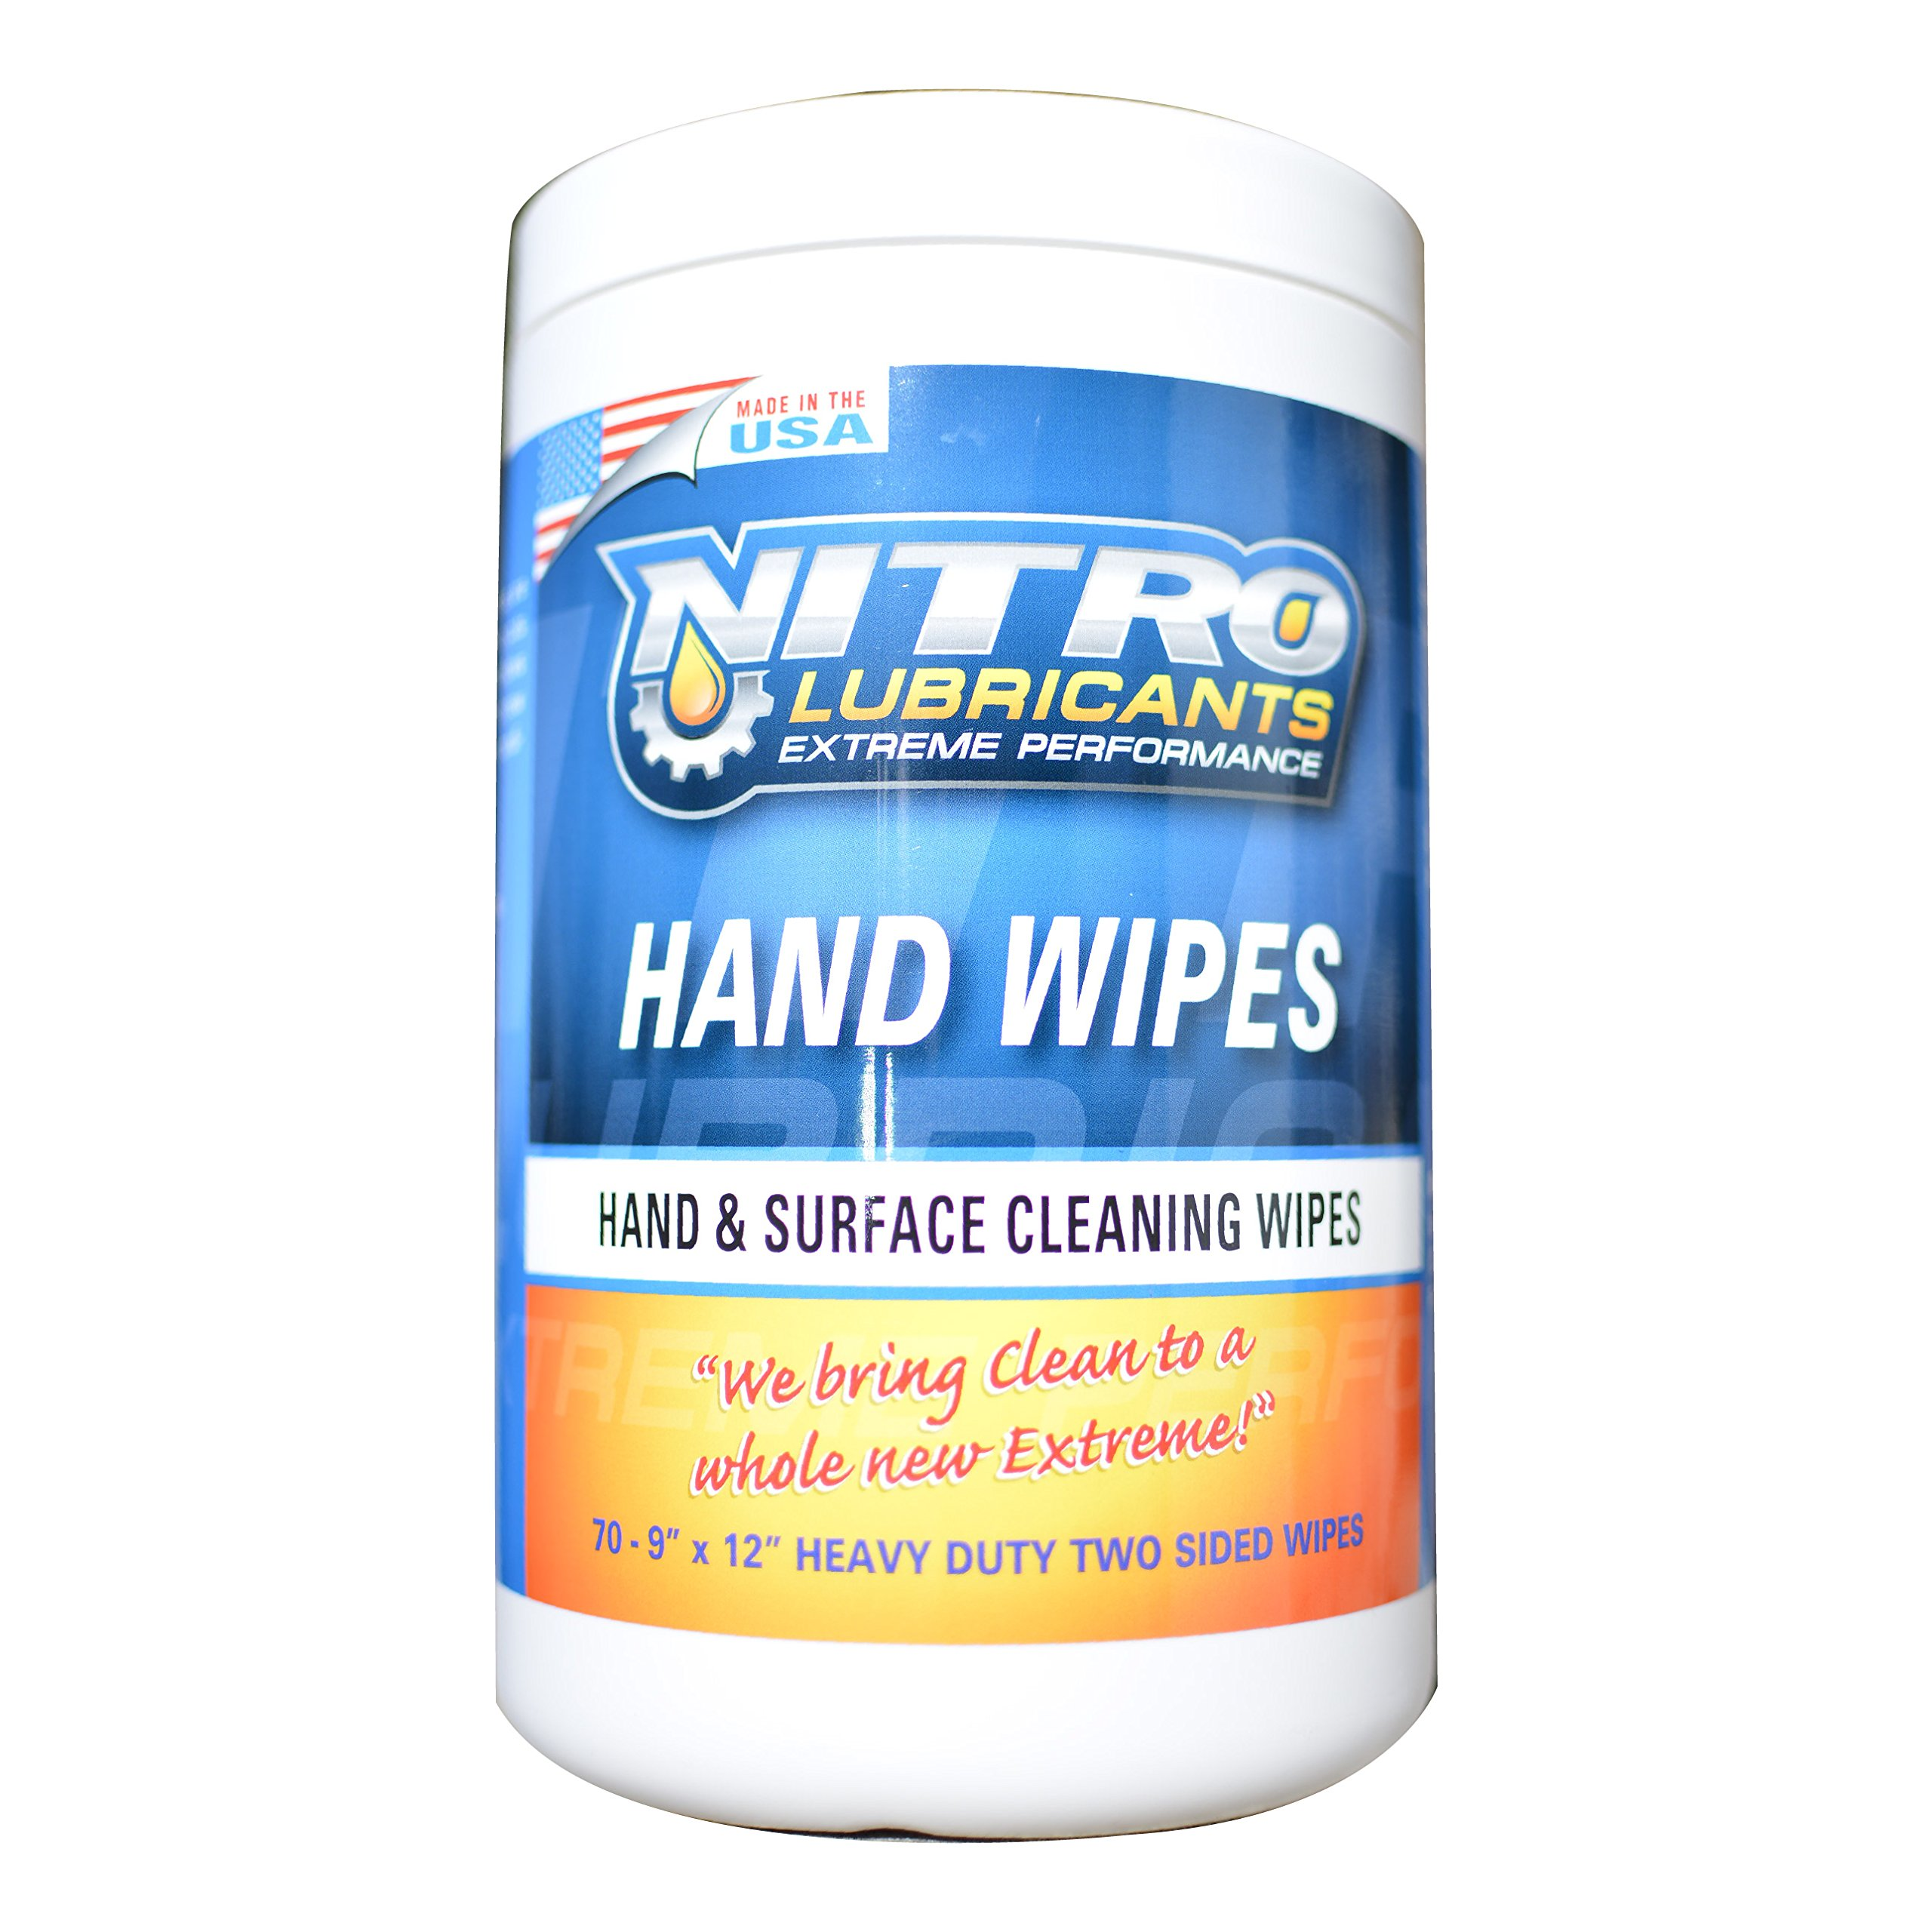 Nitro Lubricants Hand Sanitizer Wipes - Disinfecting Hand Cleaning Wipes - Tub of Hand Cleansing Wipes - Wet Towels for Shop and Home - Heavy Duty Hand Cleaner Towel Sanitizer Wipes in Dispenser Tub by Nitro Lubricants (Image #1)